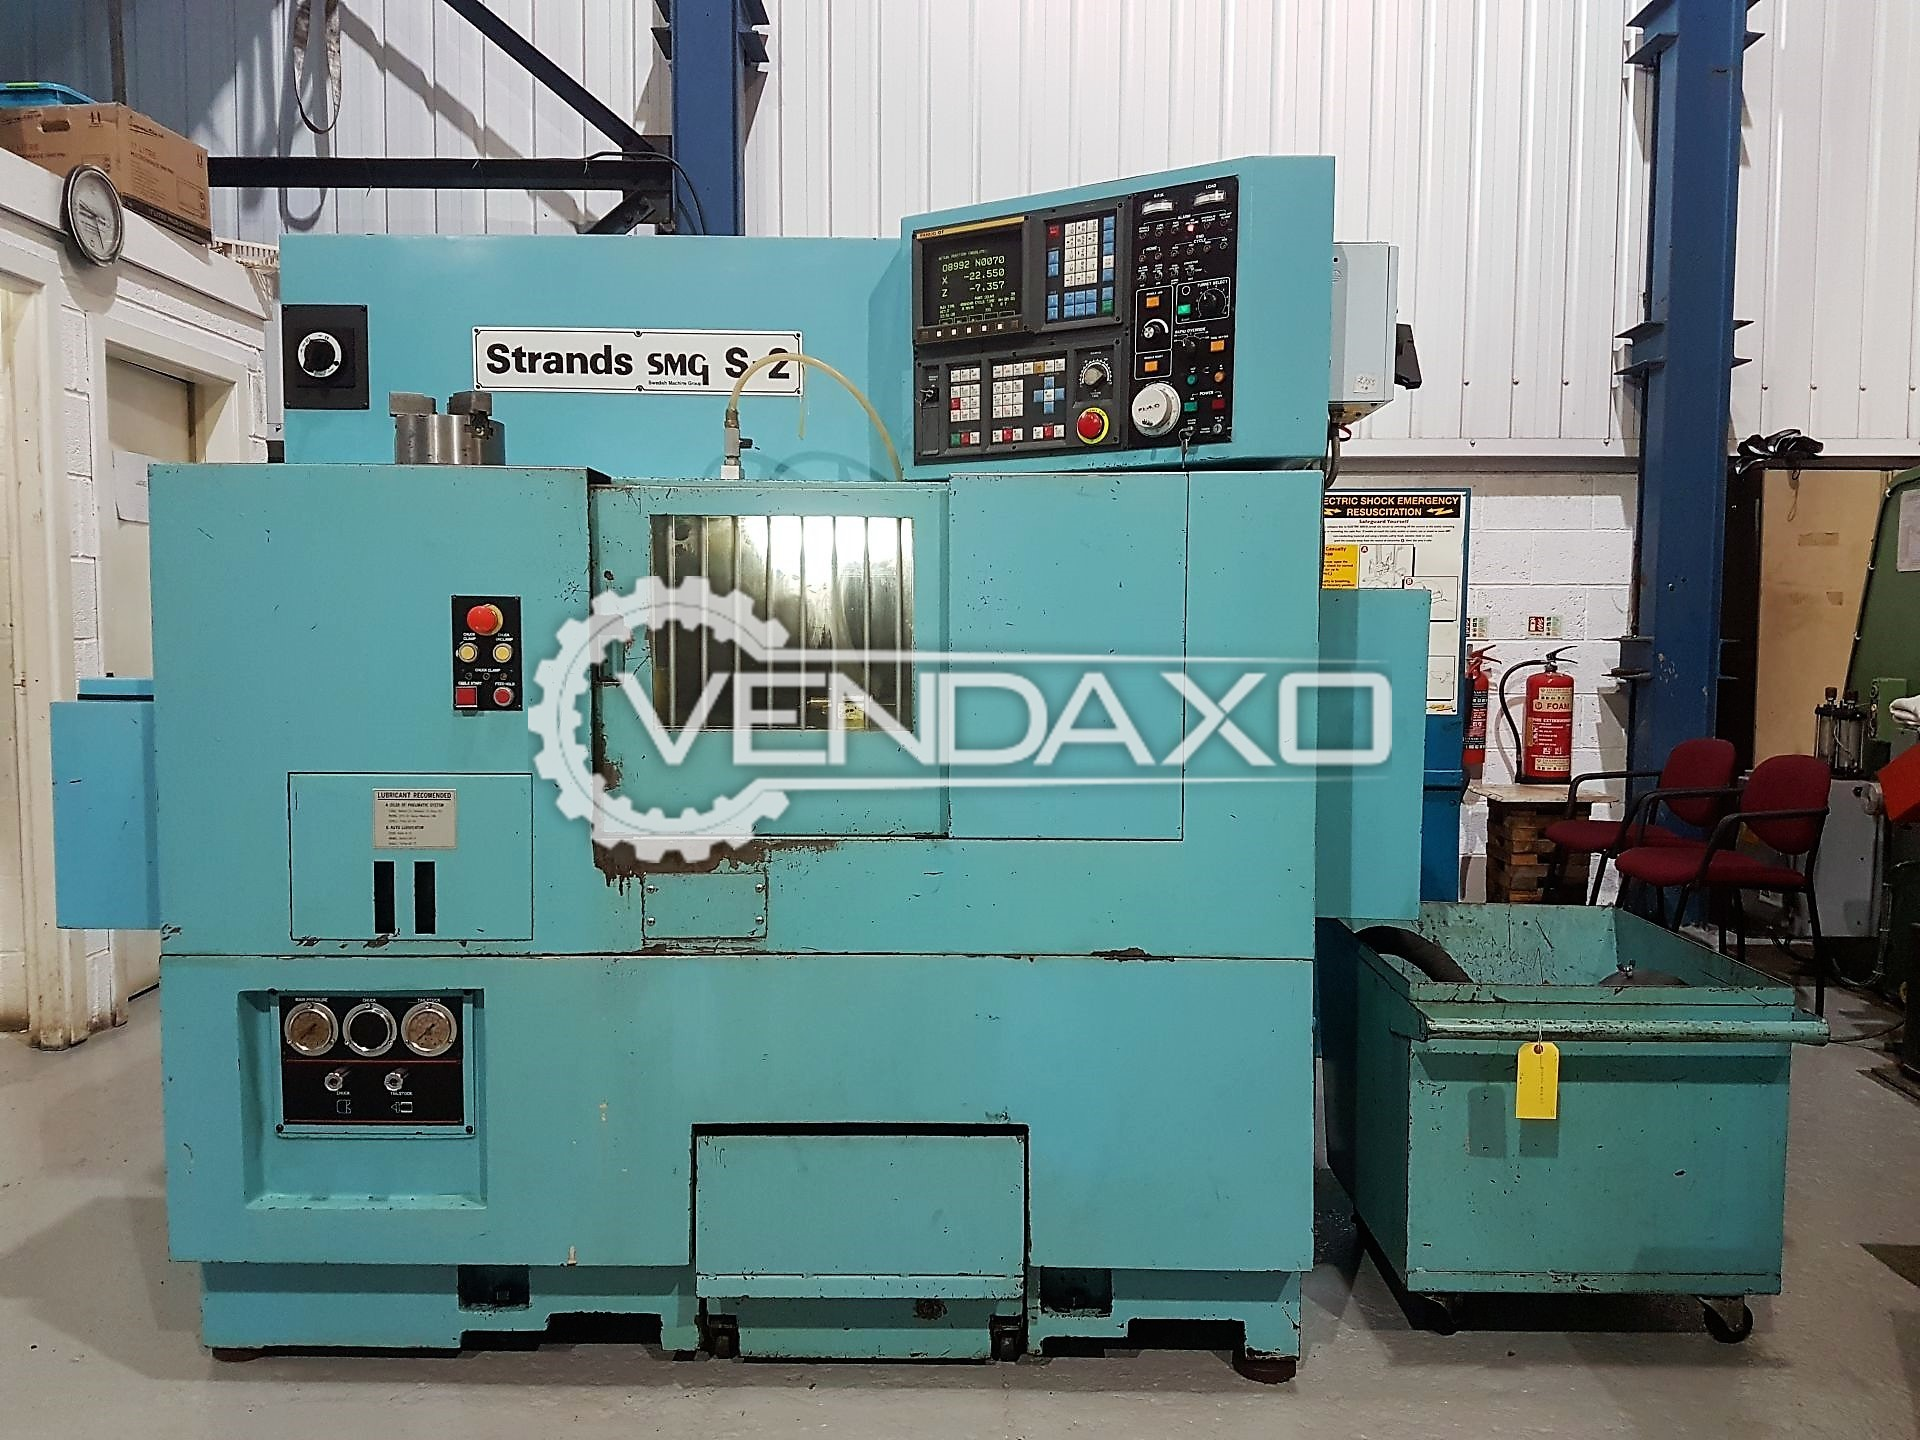 STRANDS SMG S-2 CNC Turing center